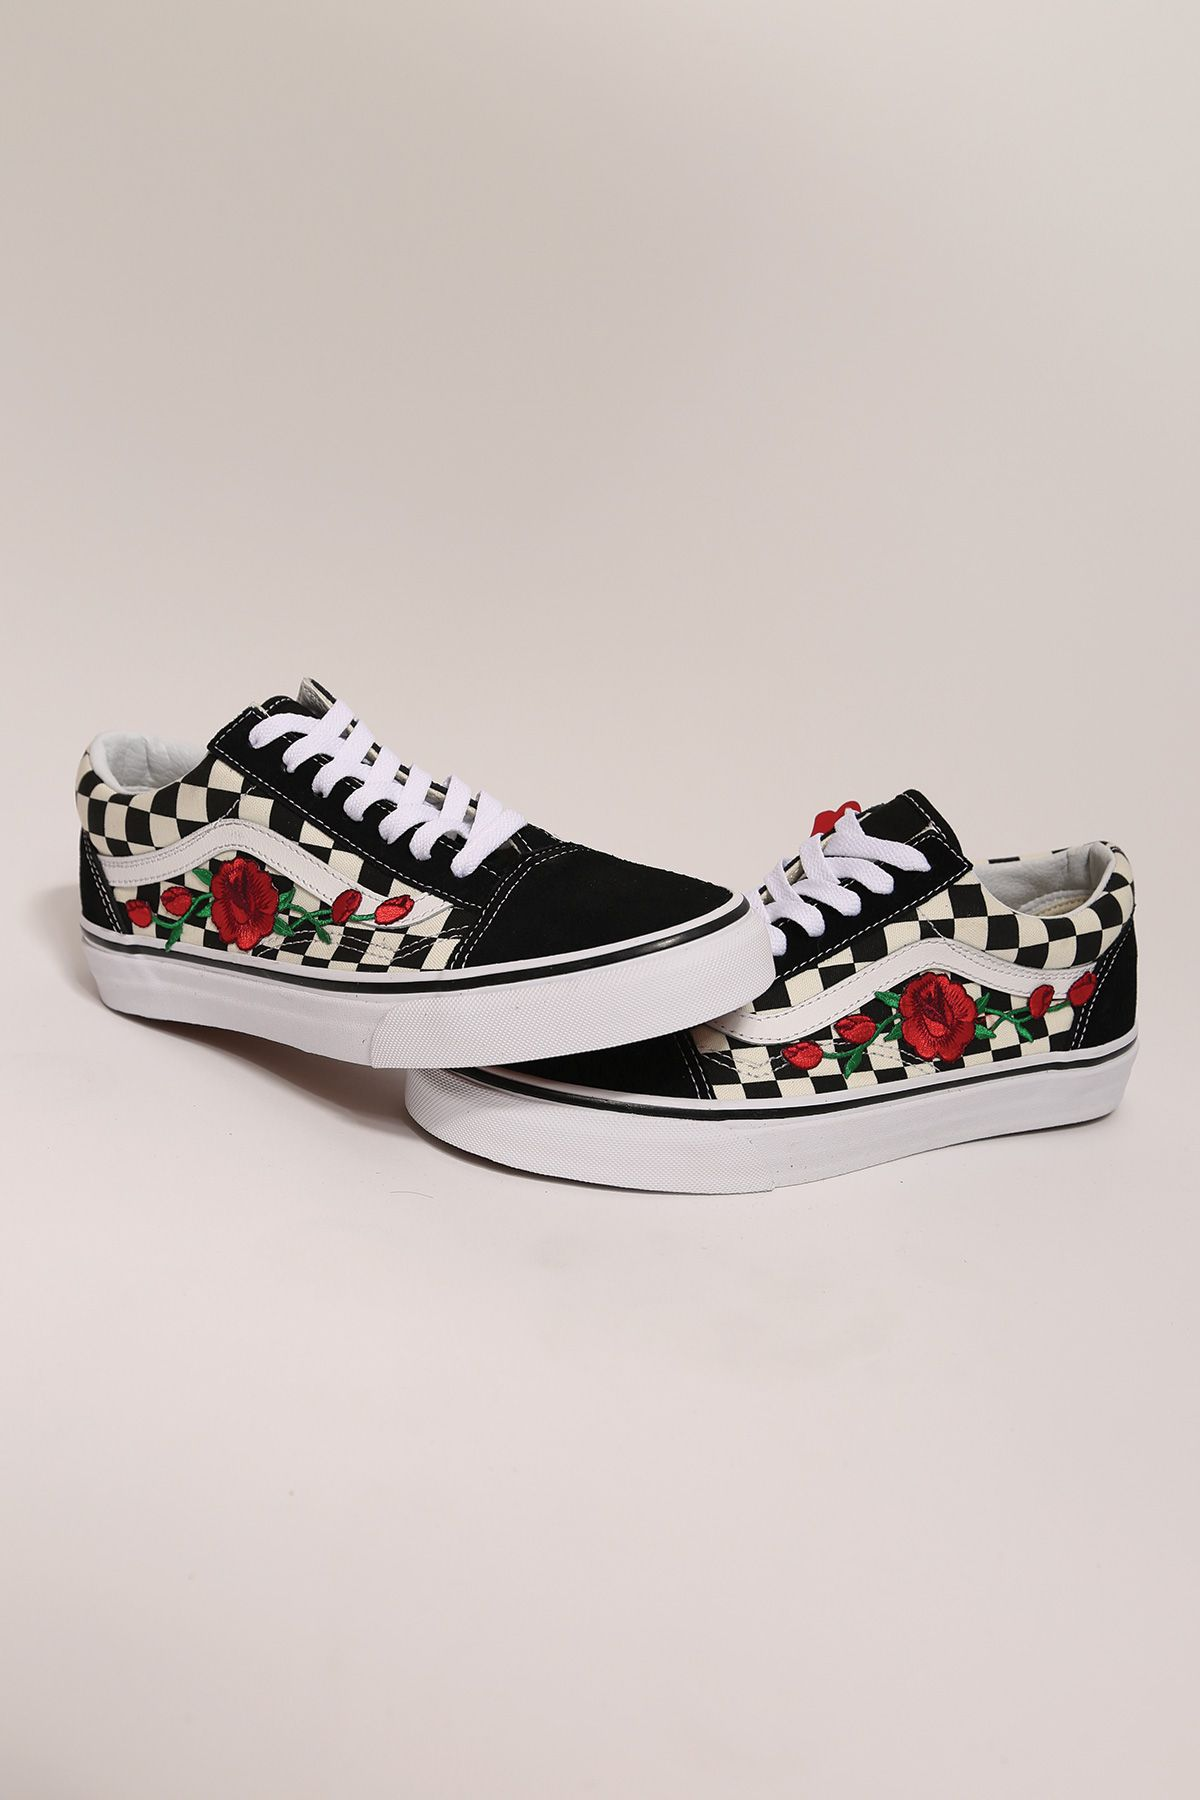 Custom rose vans checkered old skool low top | Rose vans